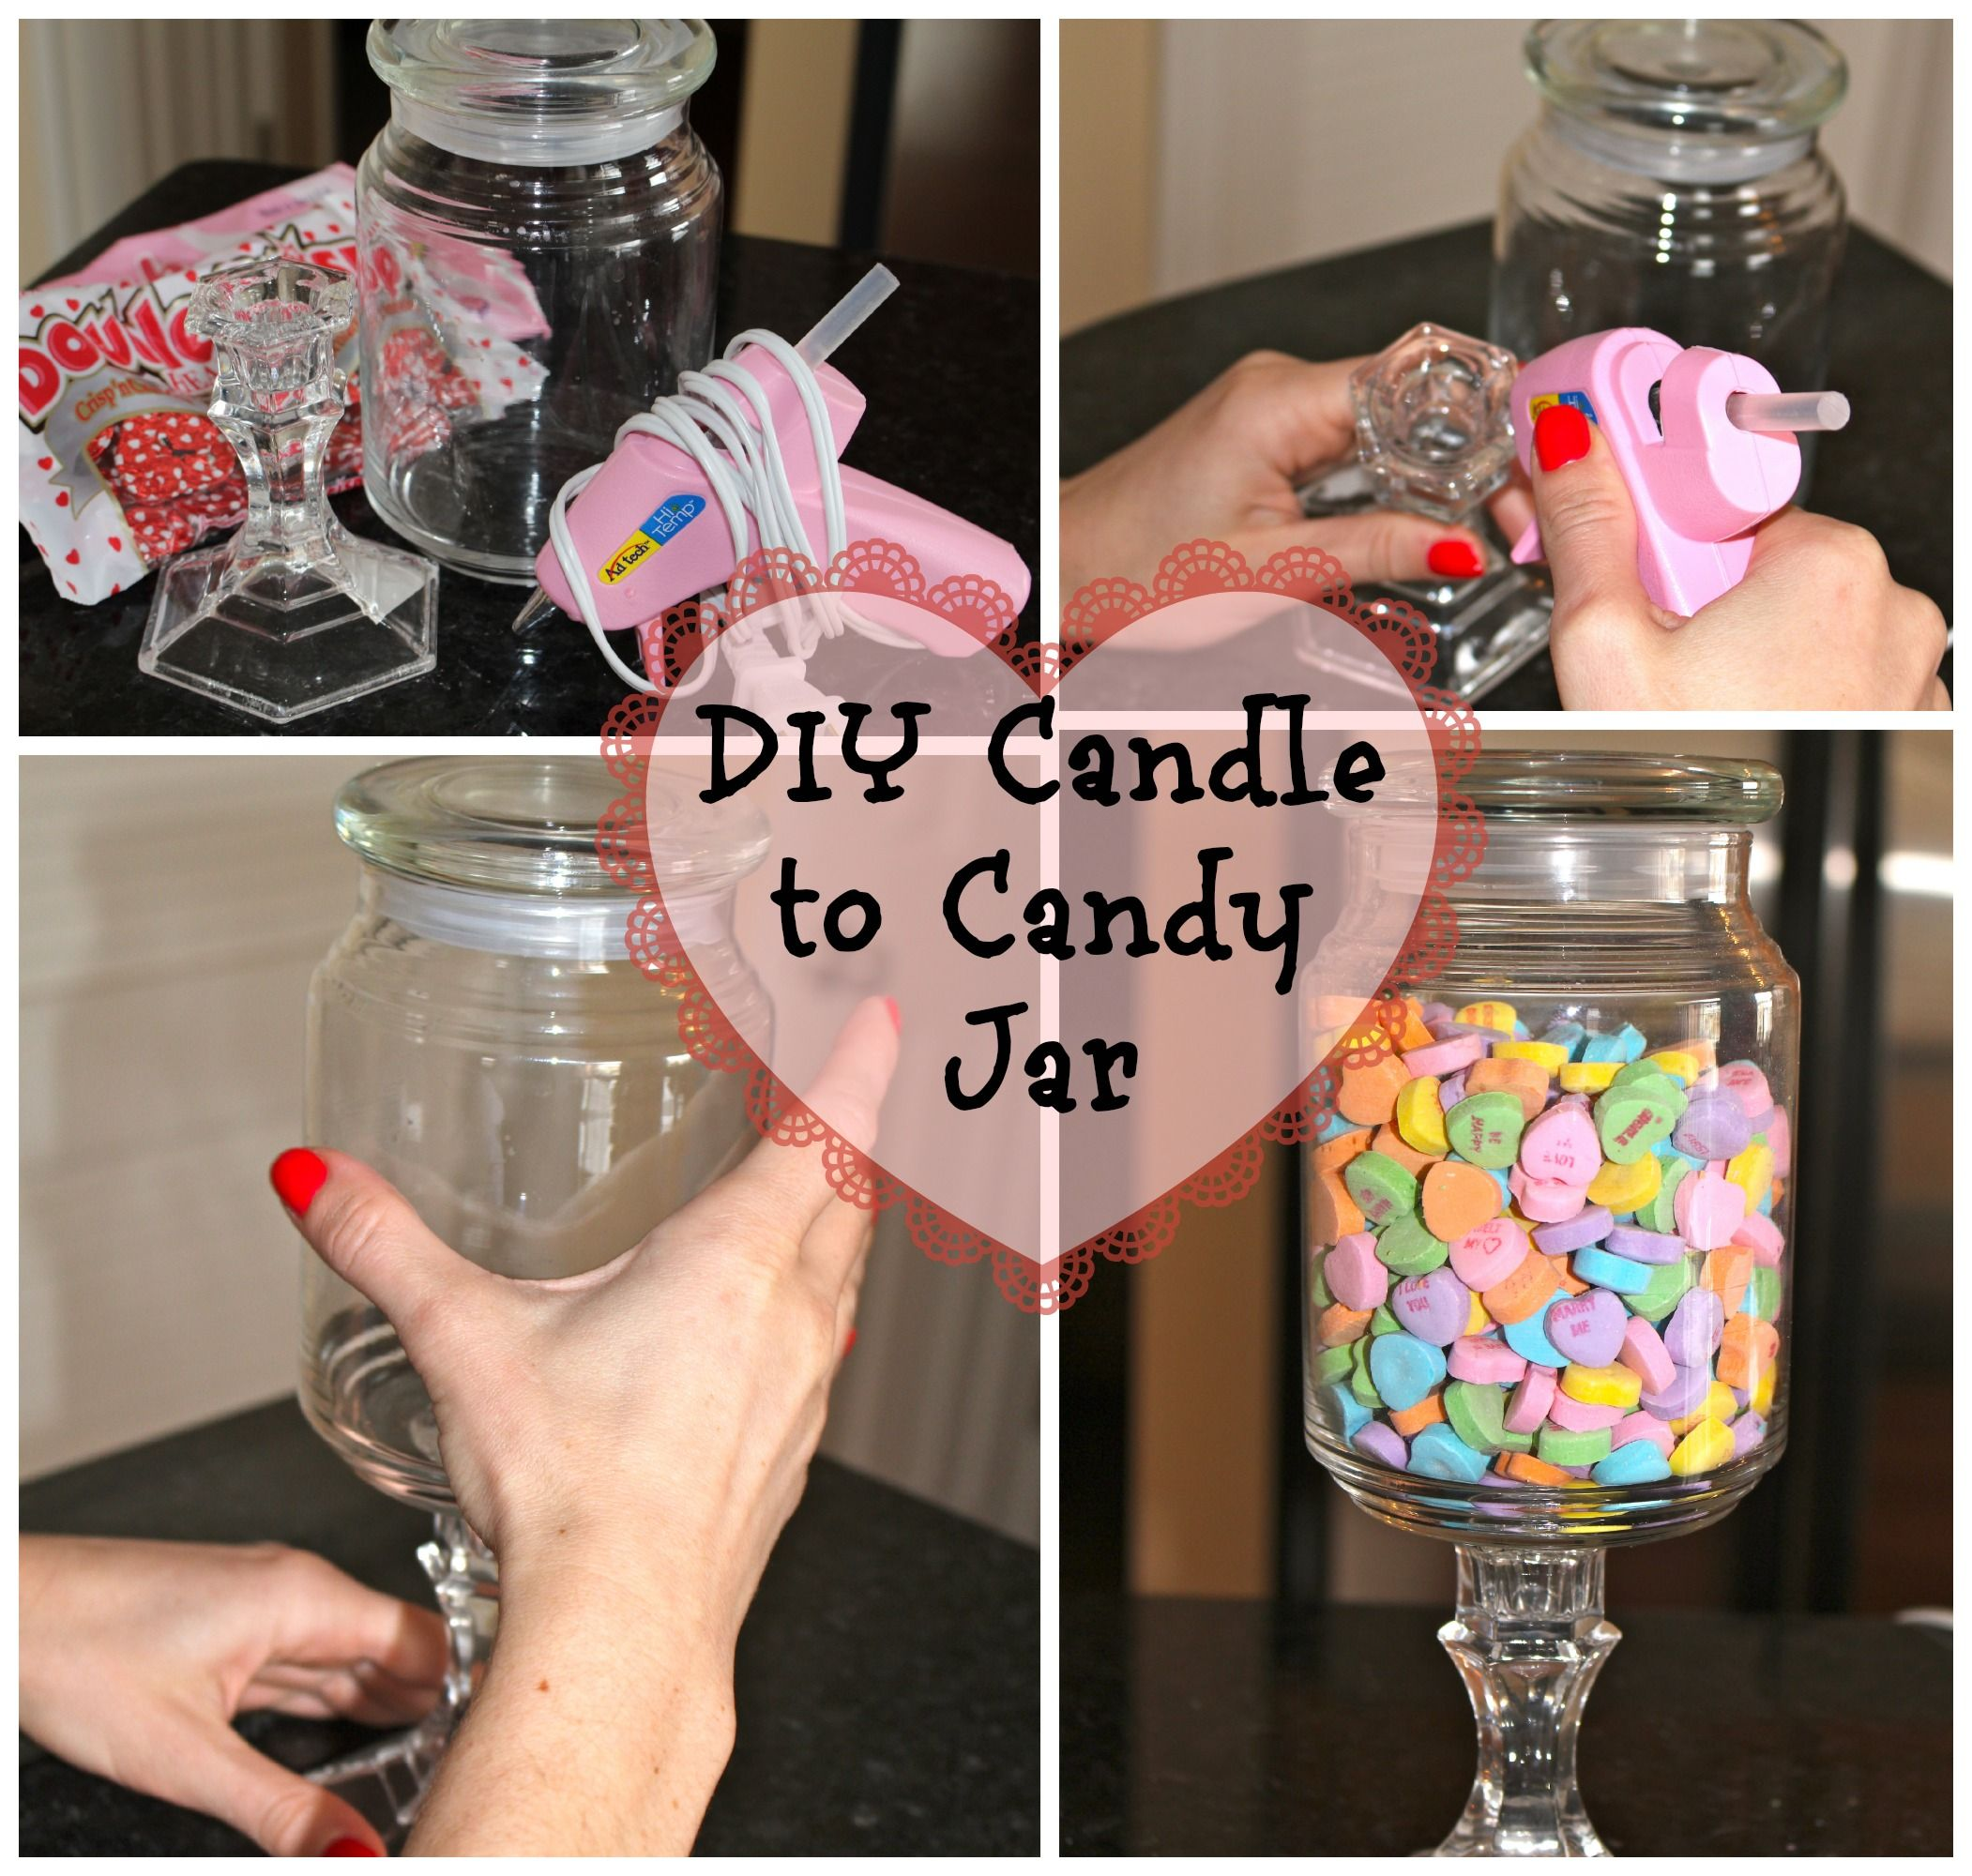 Refuse Candle Jars To Make A Diy Candy Jar For Vlentine S Day Like The Idea Of Reusing Candle Jars